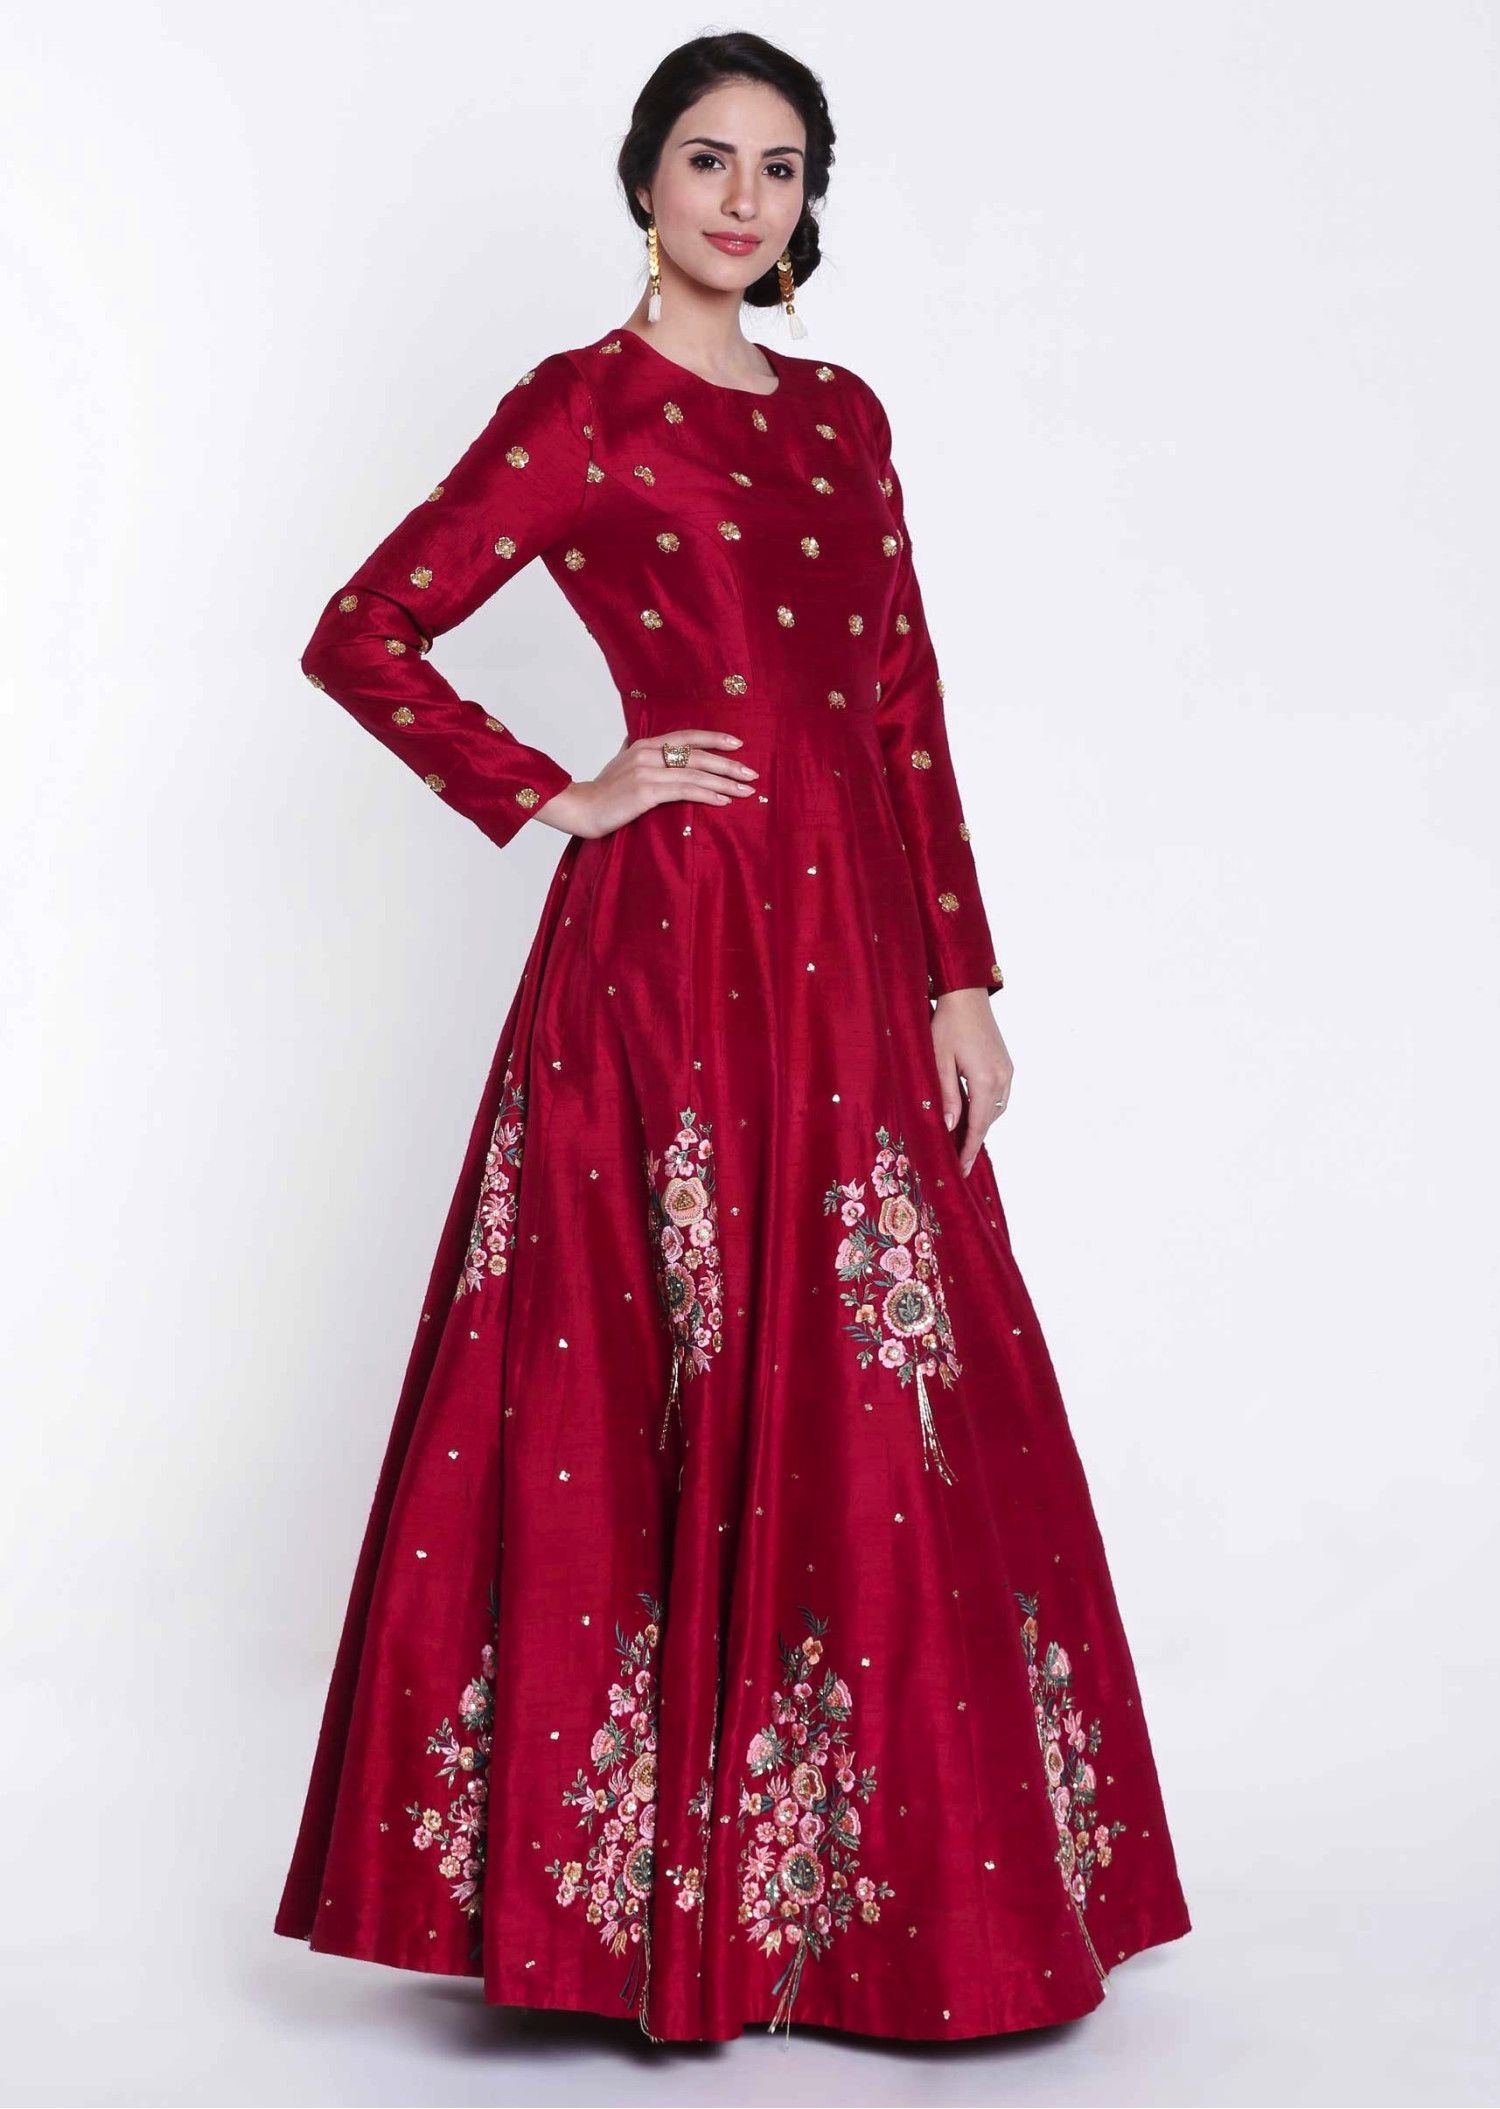 Scarlet Red Anarkali Gown in Resham and Sequin Embroidered Butti_compressed